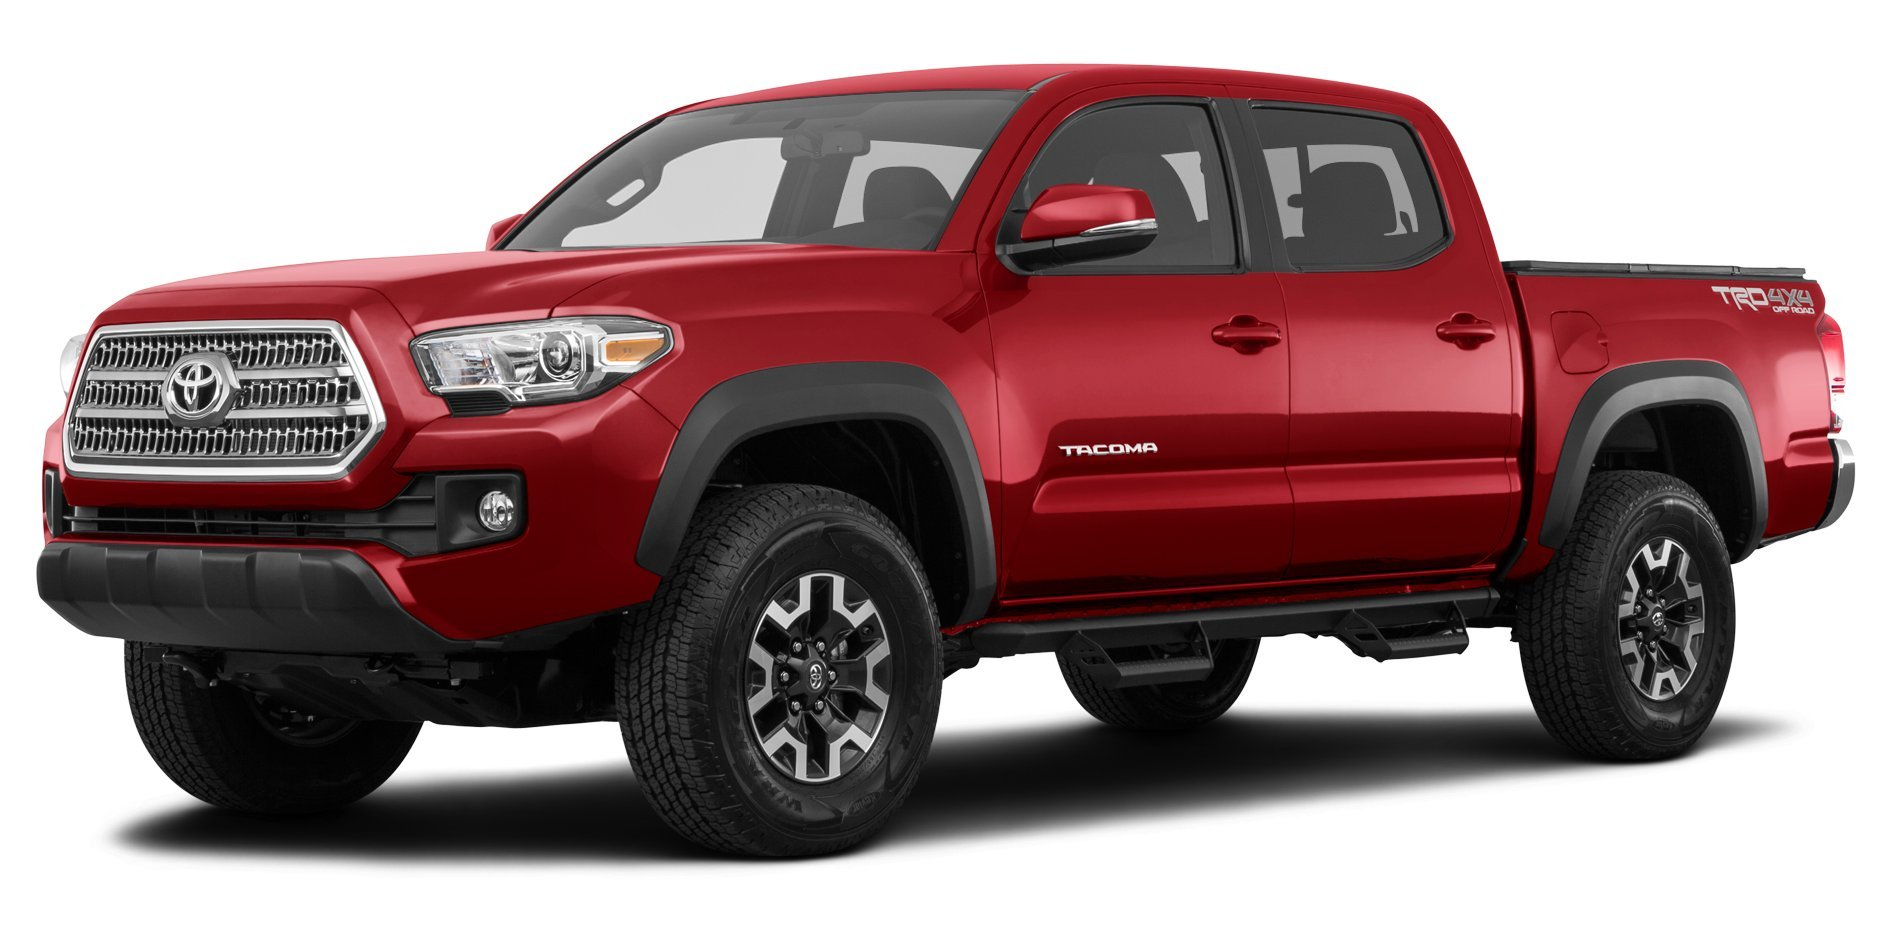 2016 Chevrolet Silverado 1500 Double Cab >> Amazon.com: 2016 Toyota Tacoma Reviews, Images, and Specs: Vehicles